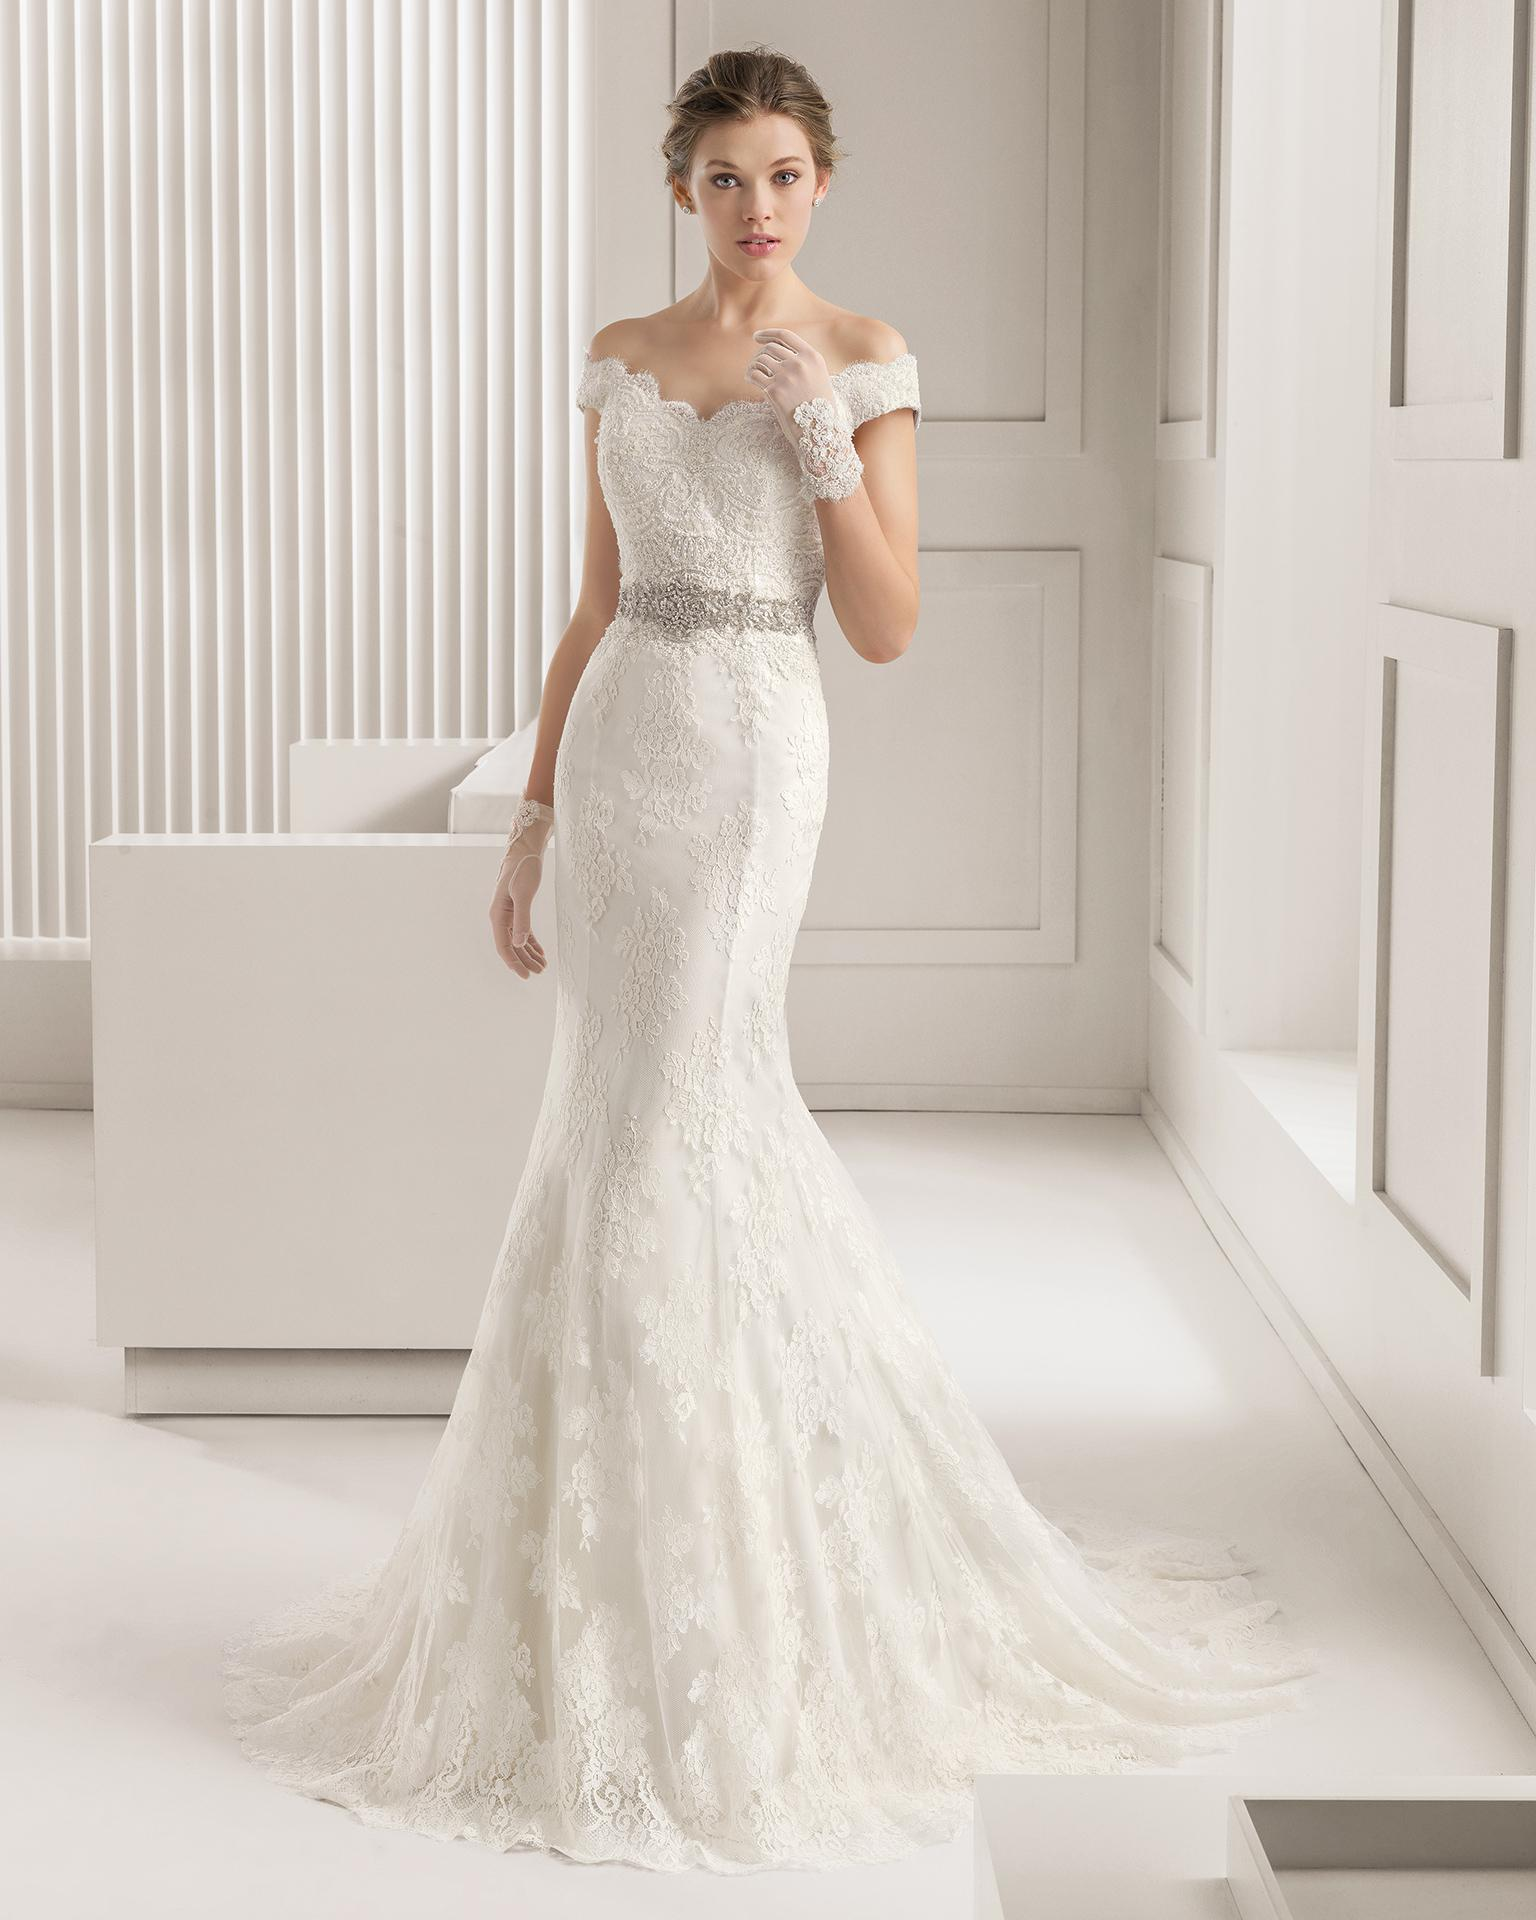 off shoulder wedding dresses fishtail wedding dress vintage lace mermaid wedding dresses off shoulder button back sequins applique bodice bridal gown court train soft tulle crystal belt lace wedding